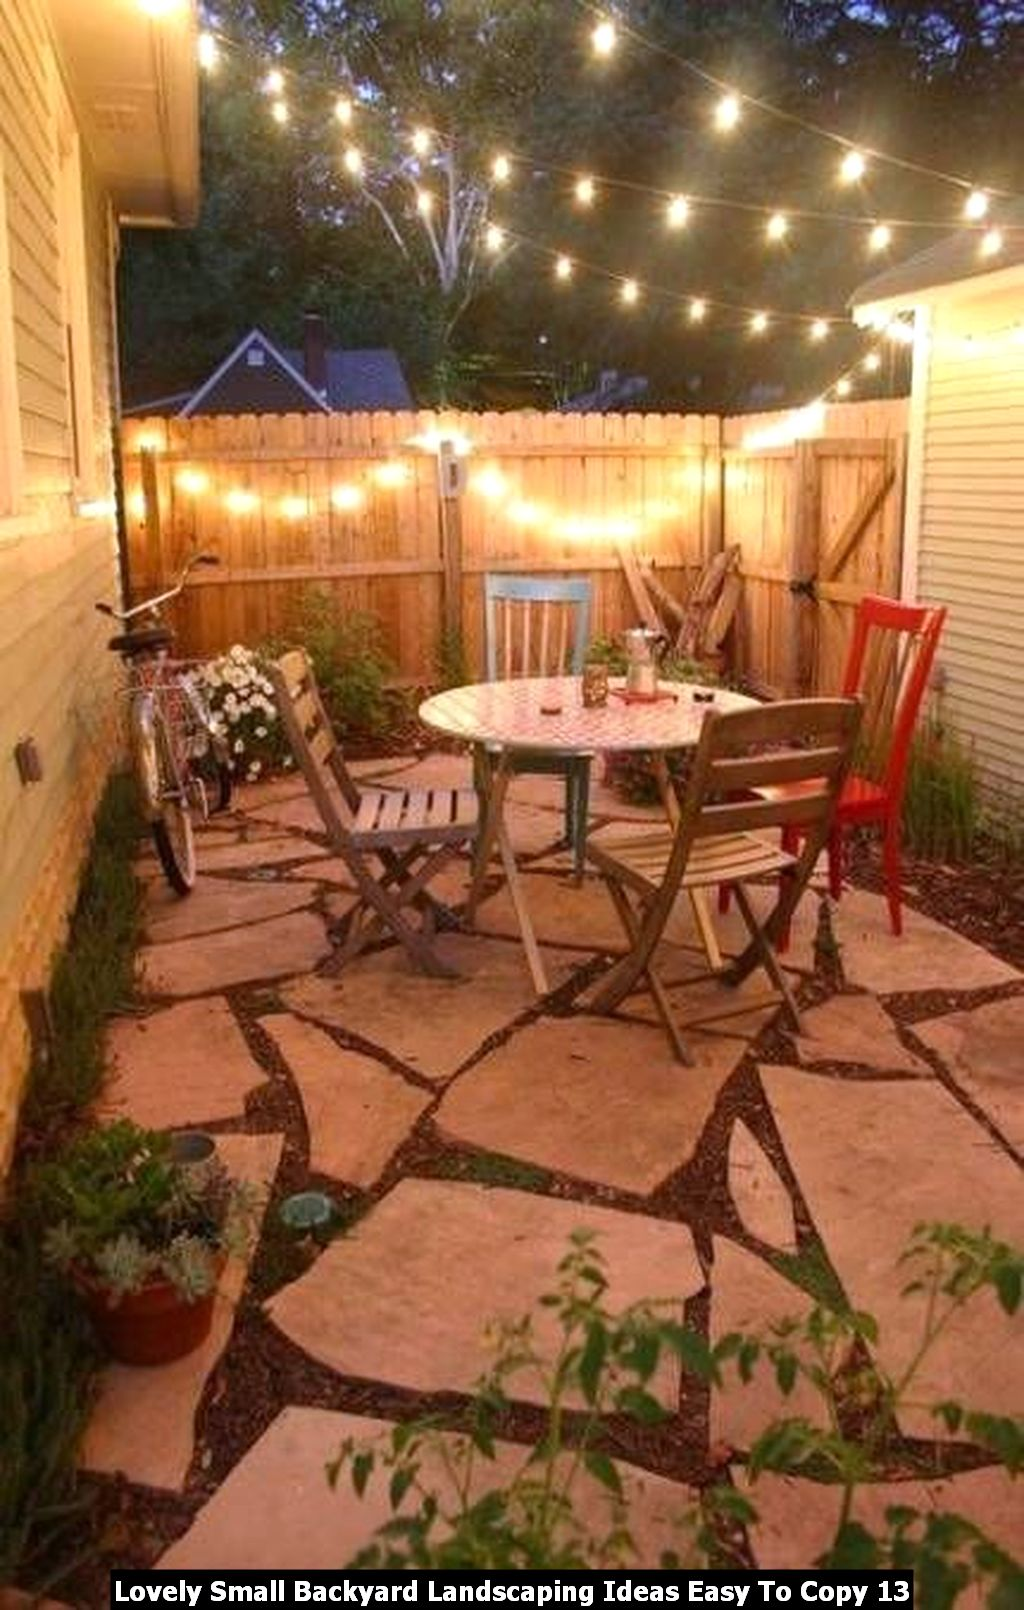 Lovely Small Backyard Landscaping Ideas Easy To Copy 13